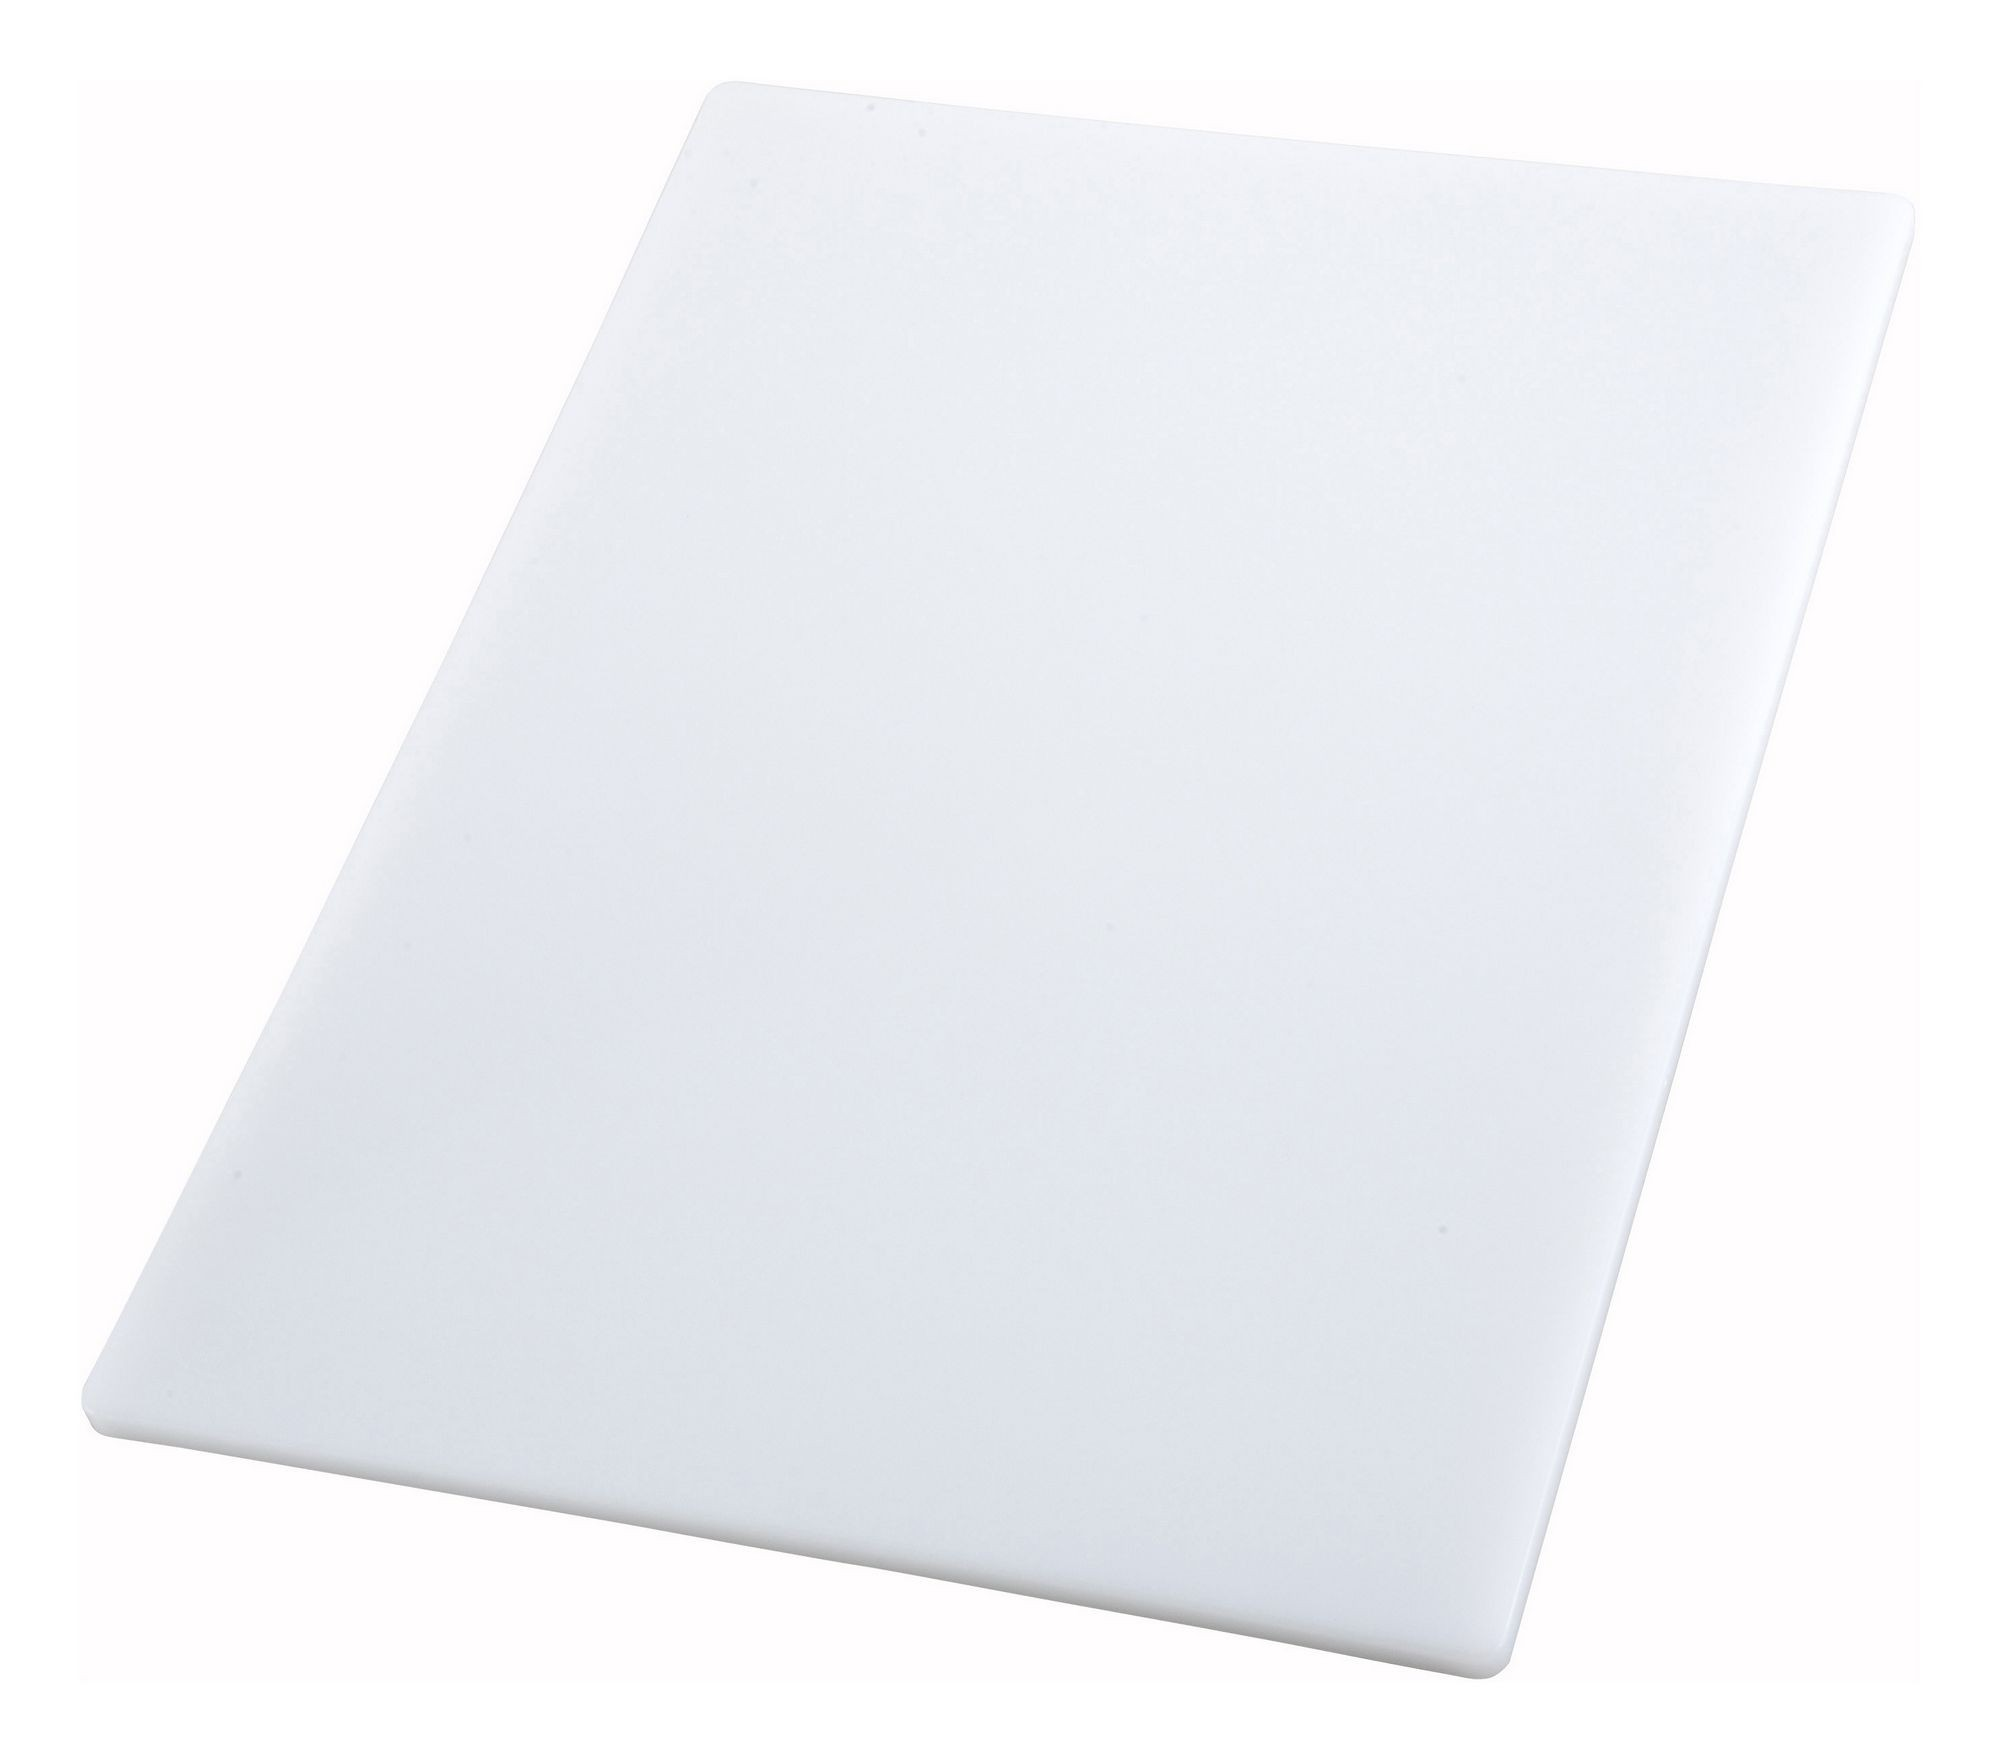 "Winco CBWT-1824 White Cutting Board 18"" x 24"" x 1/2"""